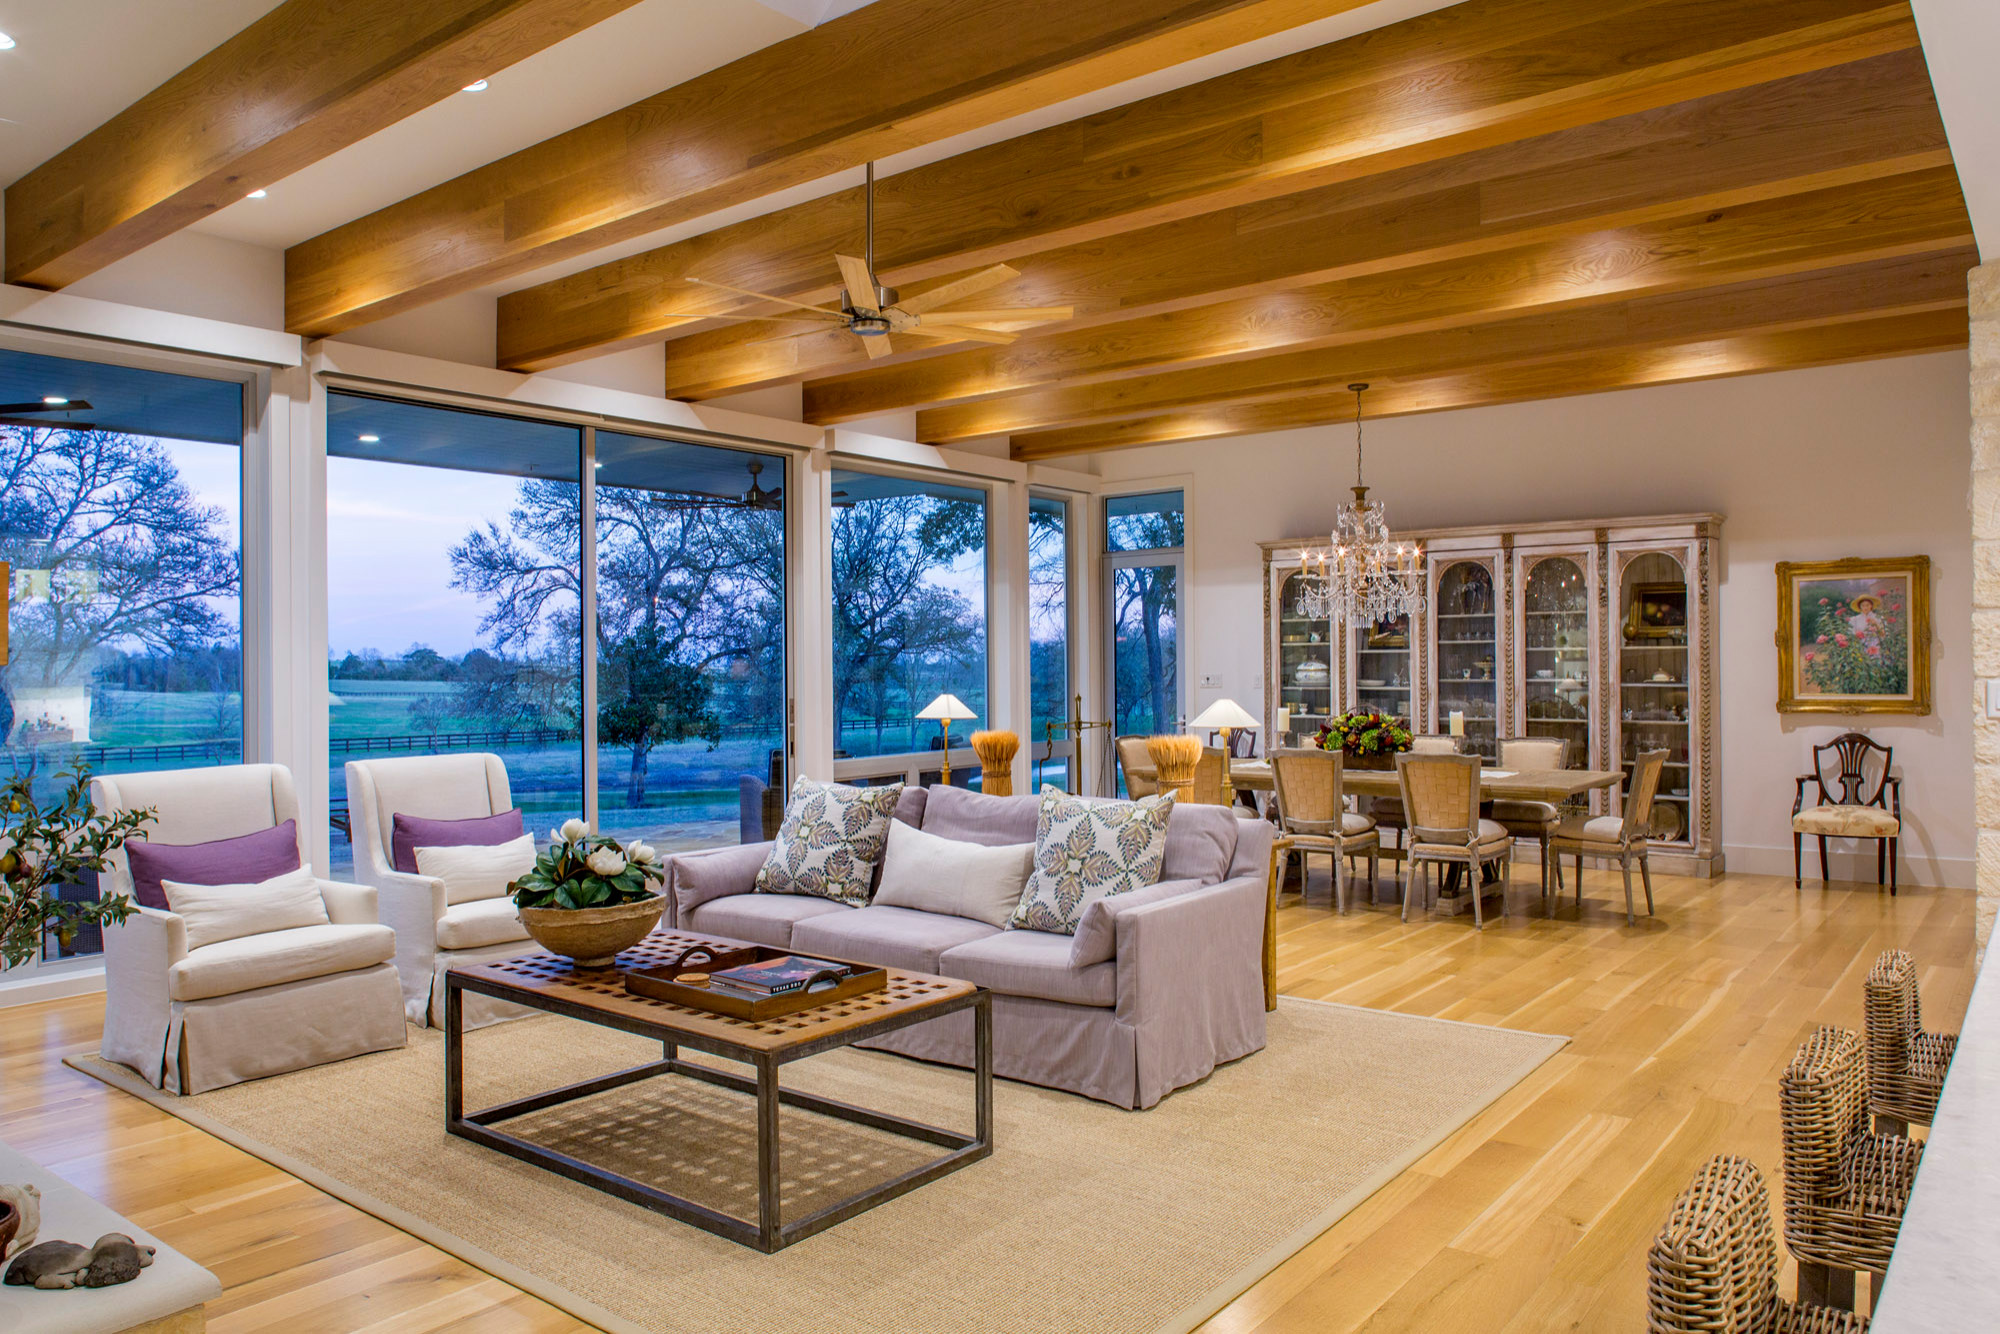 75 Beautiful Farmhouse Open Concept Living Room Pictures Ideas July 2021 Houzz